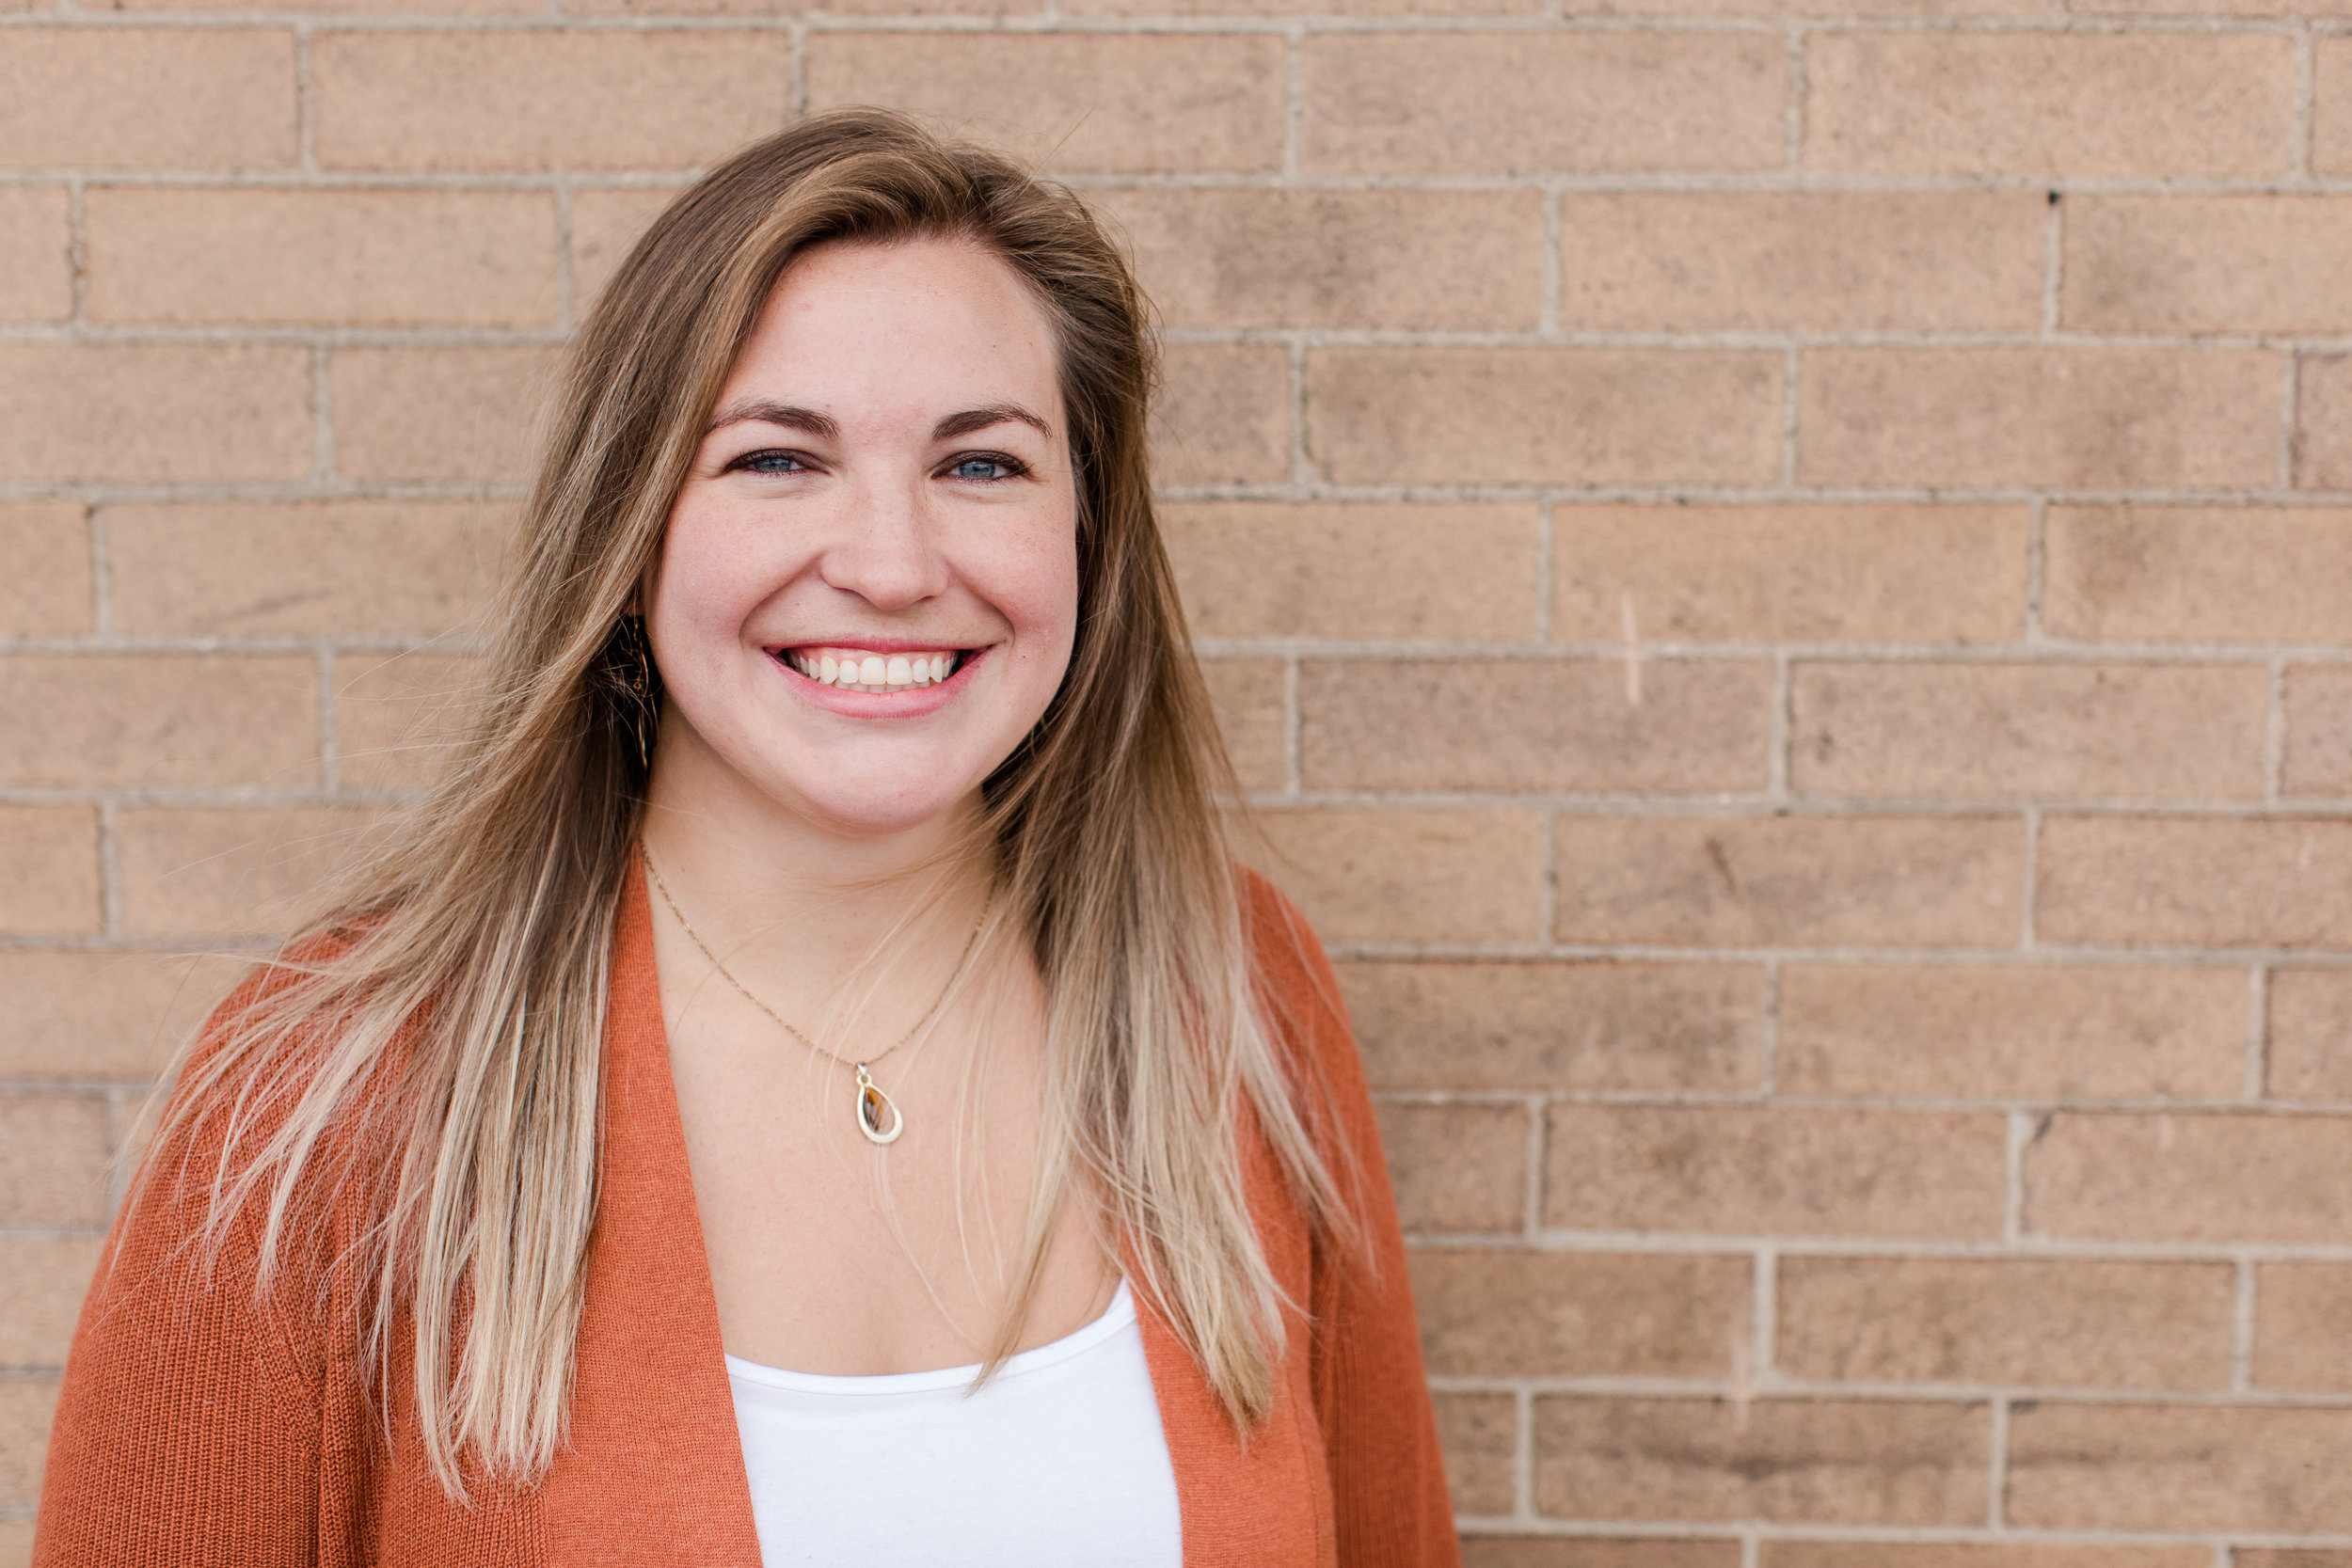 """Cassie Wahl    - Vineyard Kids Pastoral Assistant   Focus: Vineyard Kids  Fun Fact: In high school she was voted """"Most Likely to Use Cheesy Pick-Up Lines.""""  Favorite Verse:  For God hath not given us the spirit of fear; but of power, and of love, and of a sound mind. (2 Timothy 1:7 KJV)"""